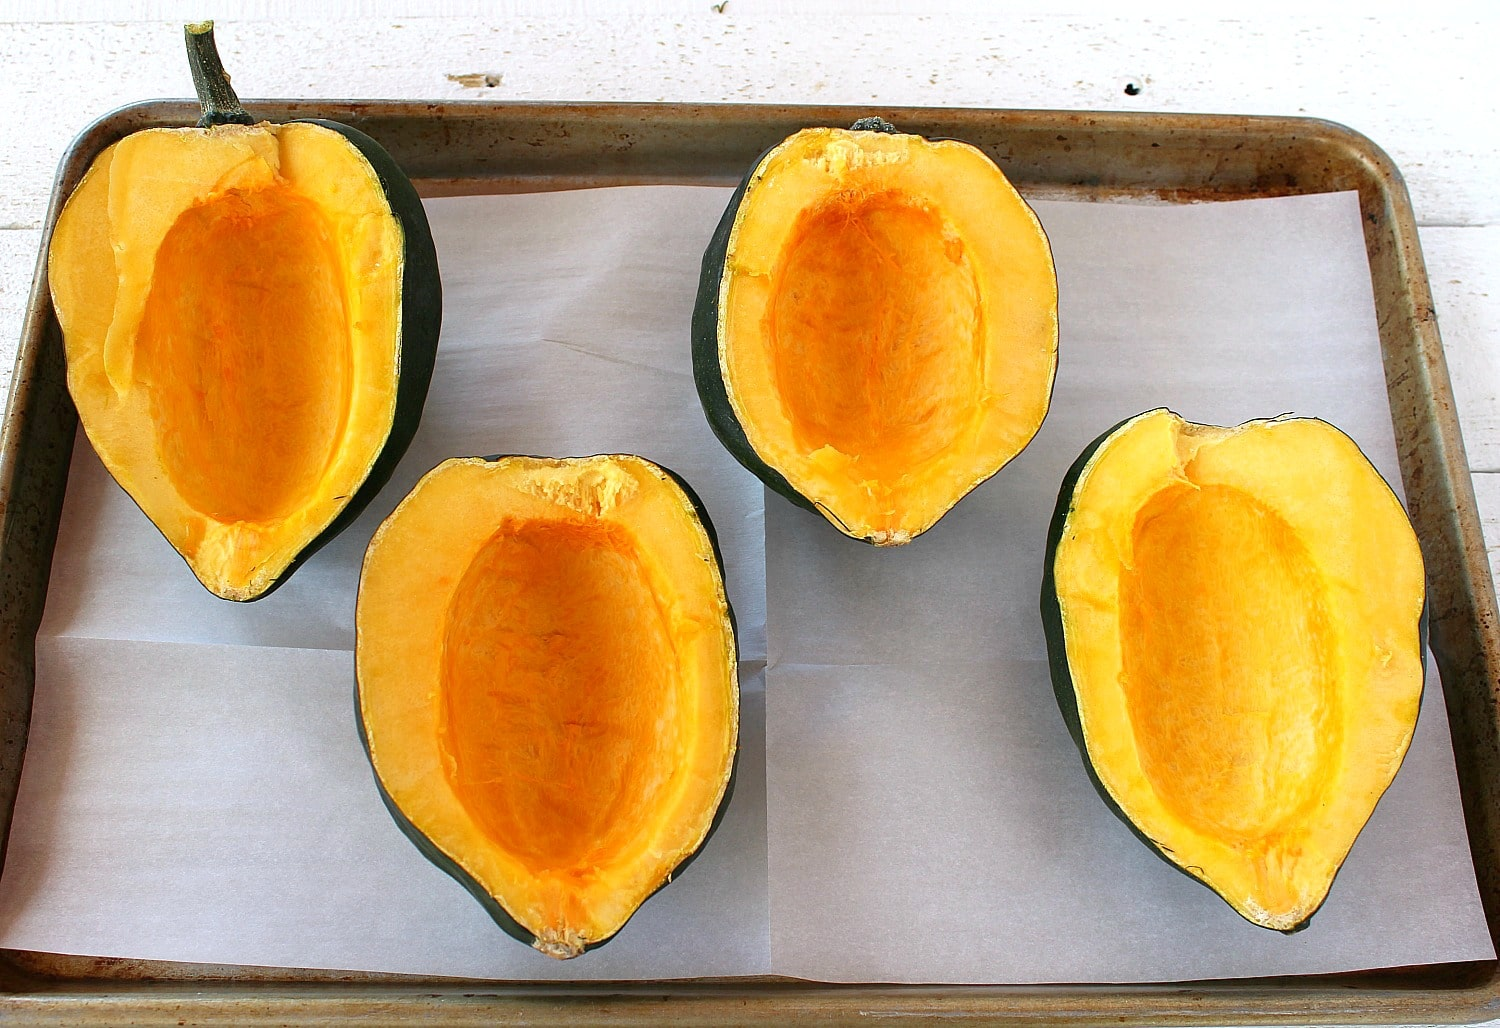 Place each squash flesh side up on cookie sheet with parchment paper.